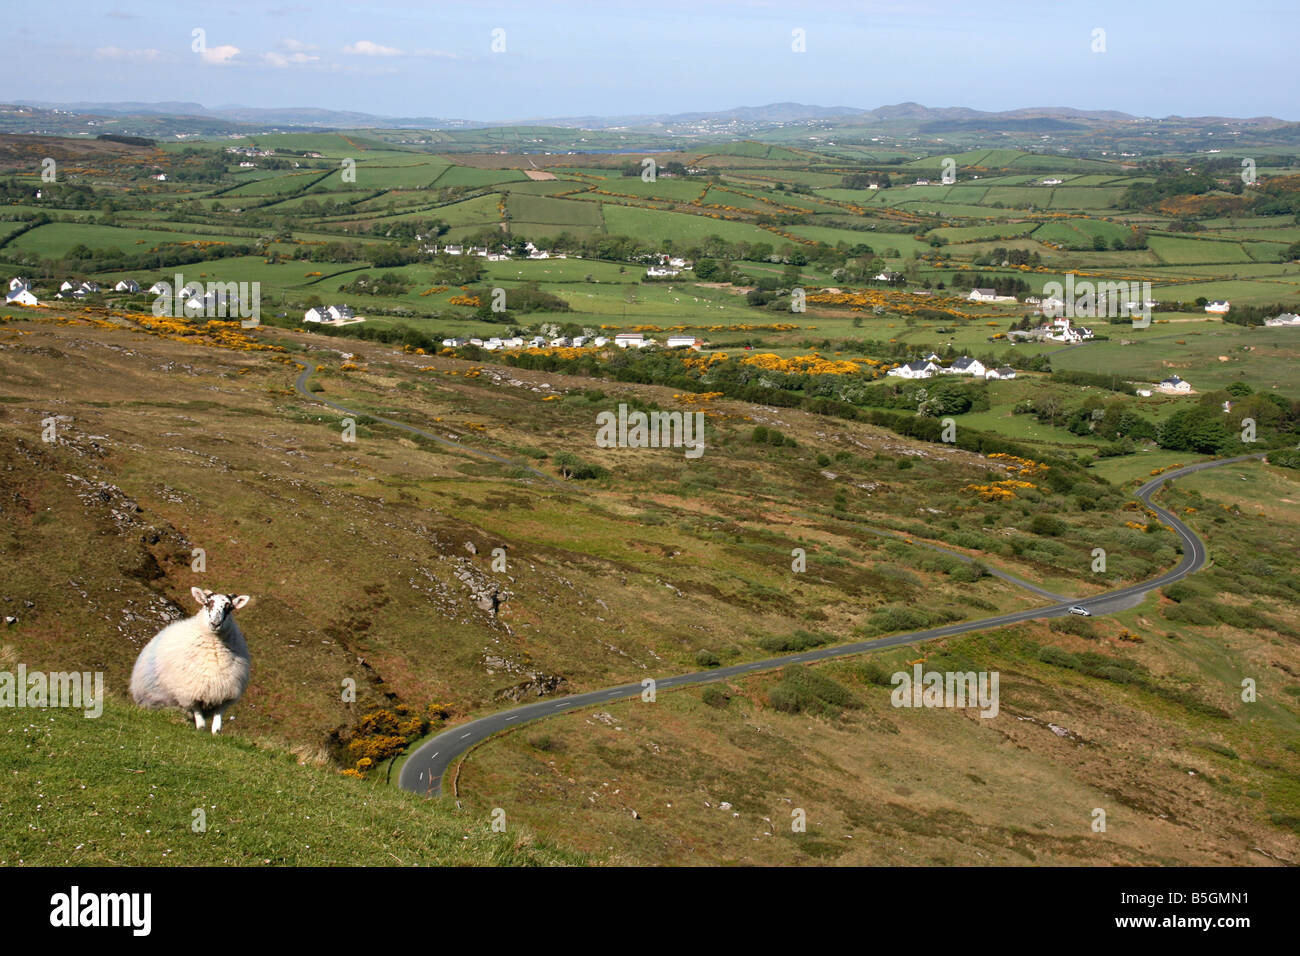 lone sheep standing on the steep side of Knockalla Mountains in County Donegal, Ireland - Stock Image